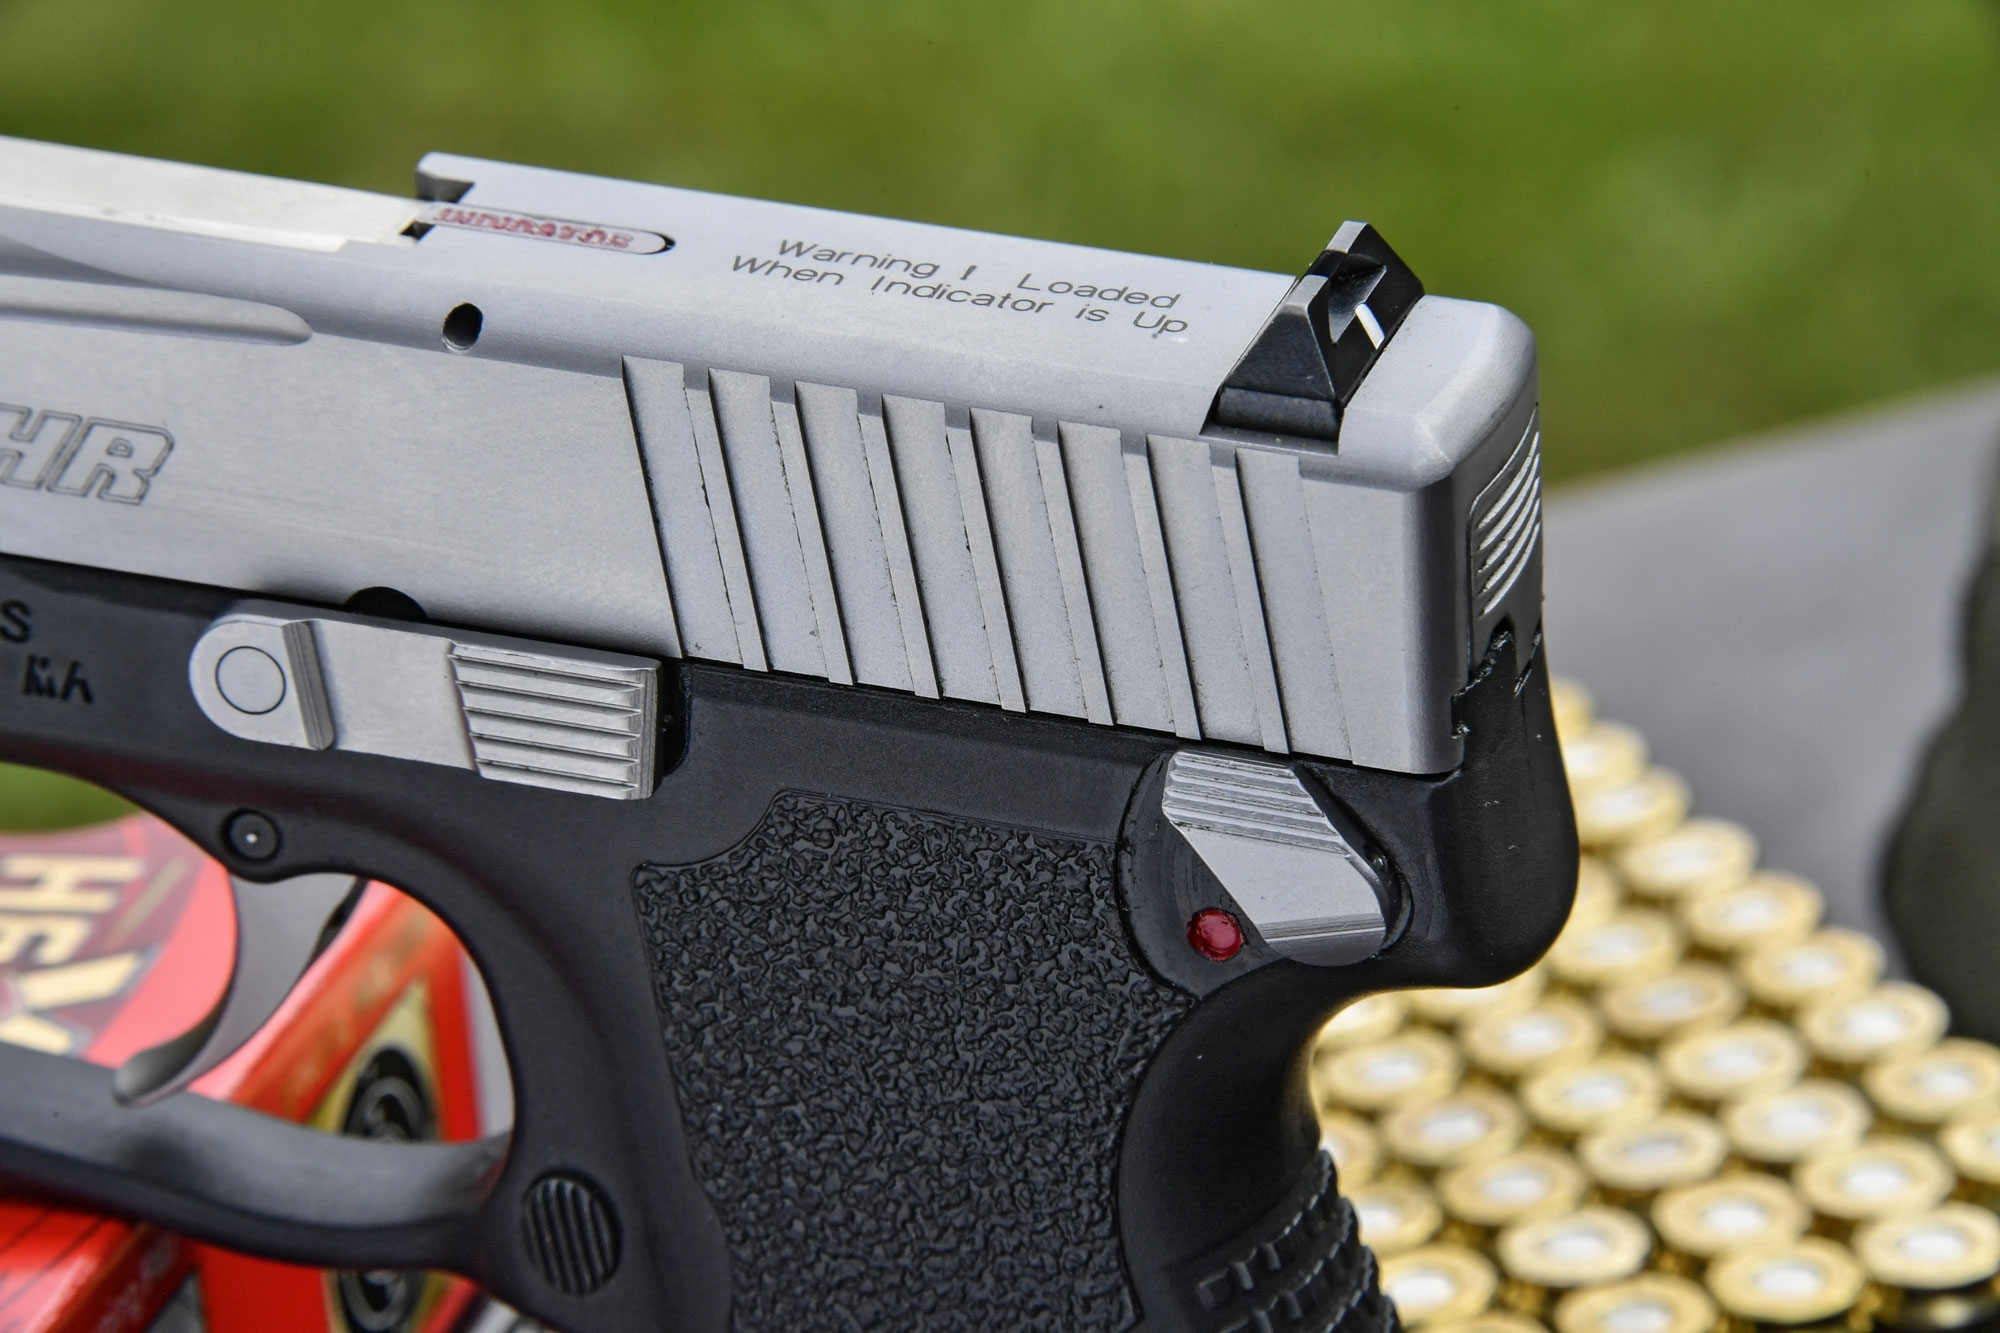 The rear sight of the Kahr Arms P9 Duotone pistol